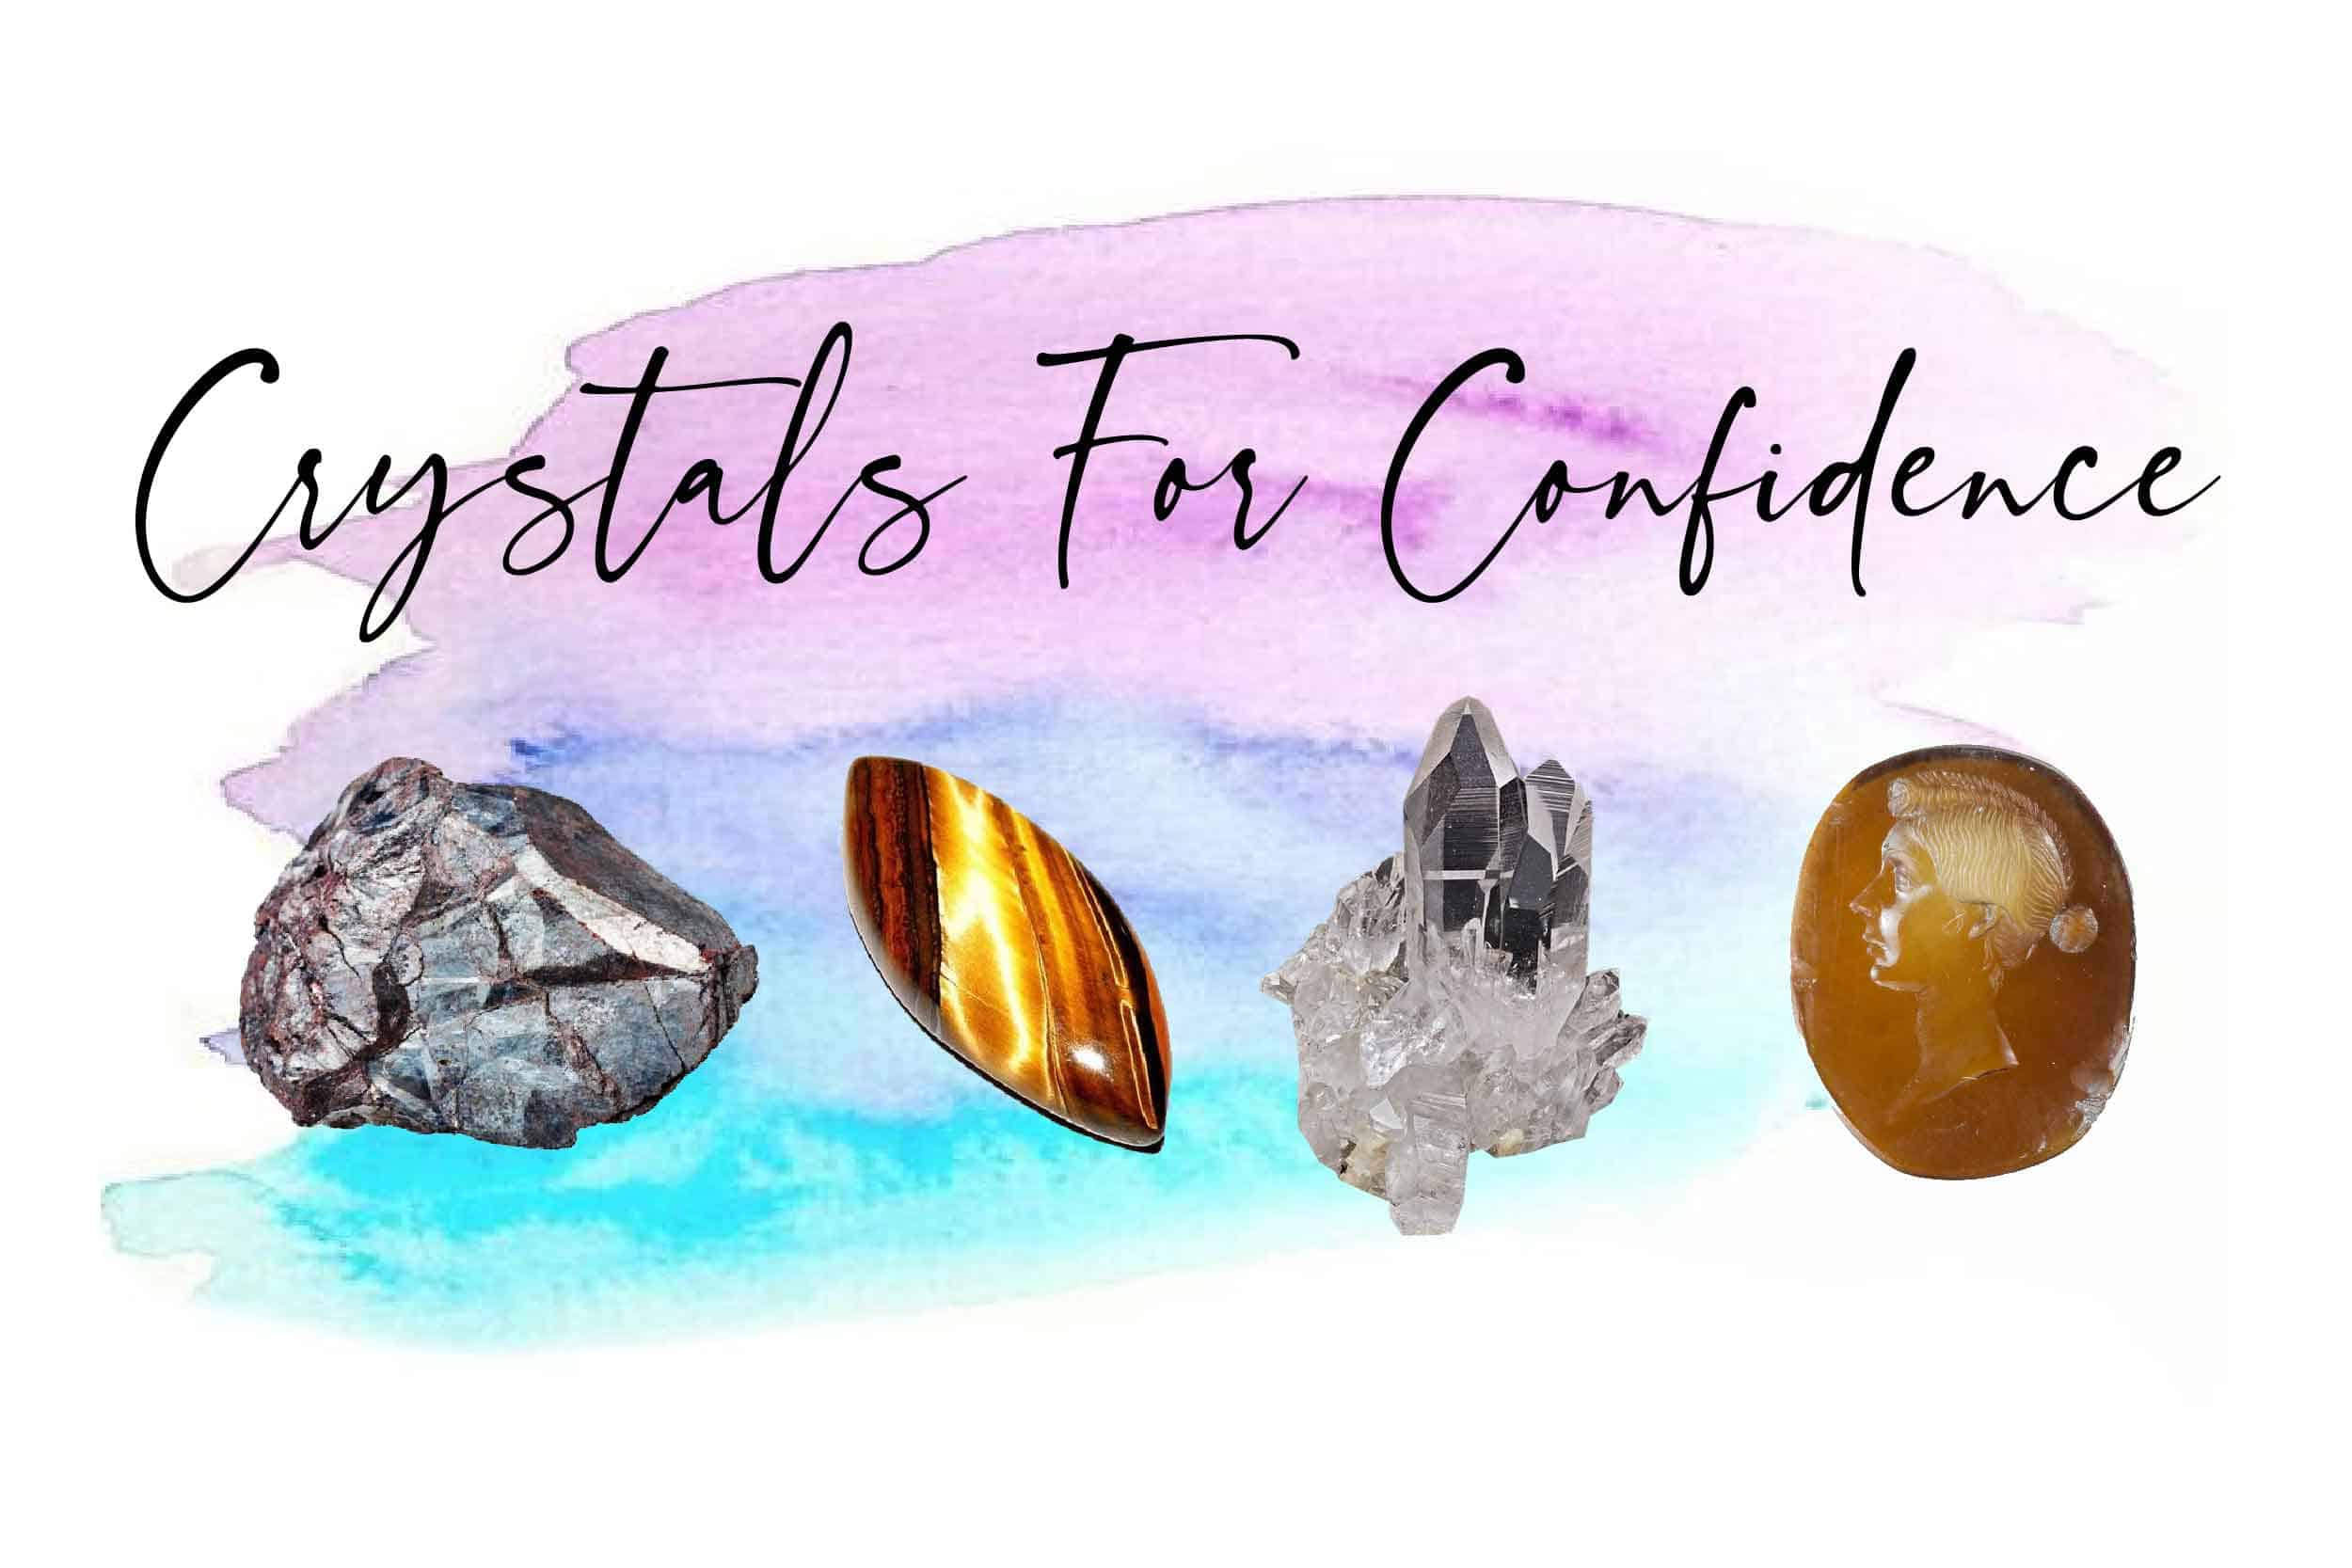 Crystals for confidence